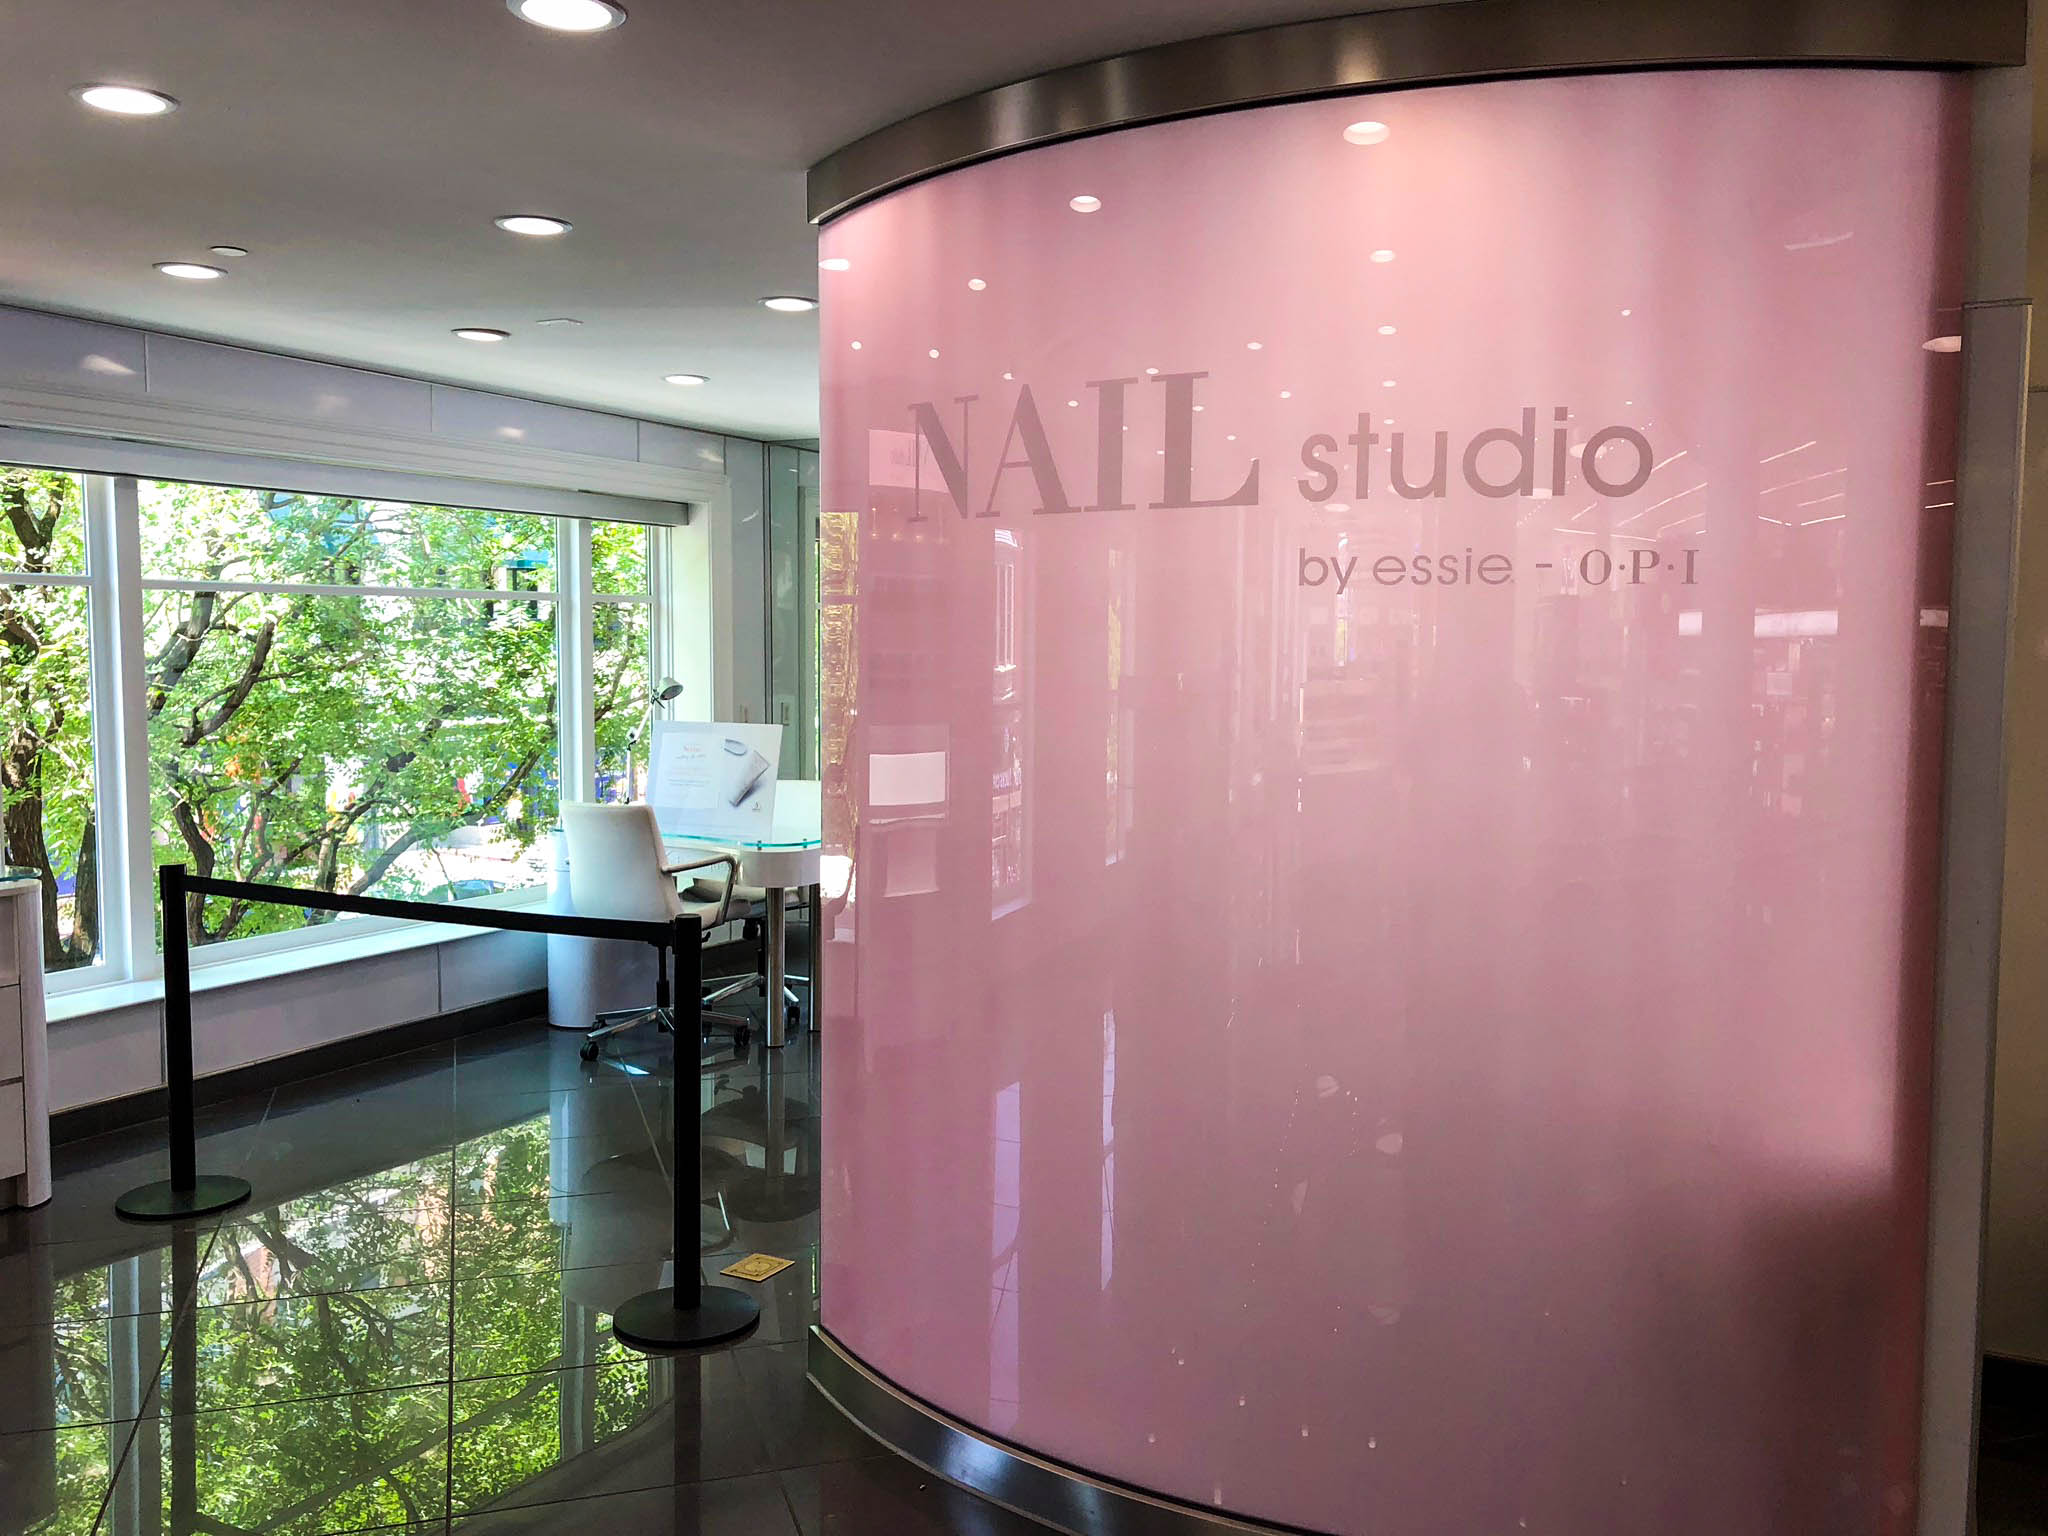 Nail Studio inside - Walgreens